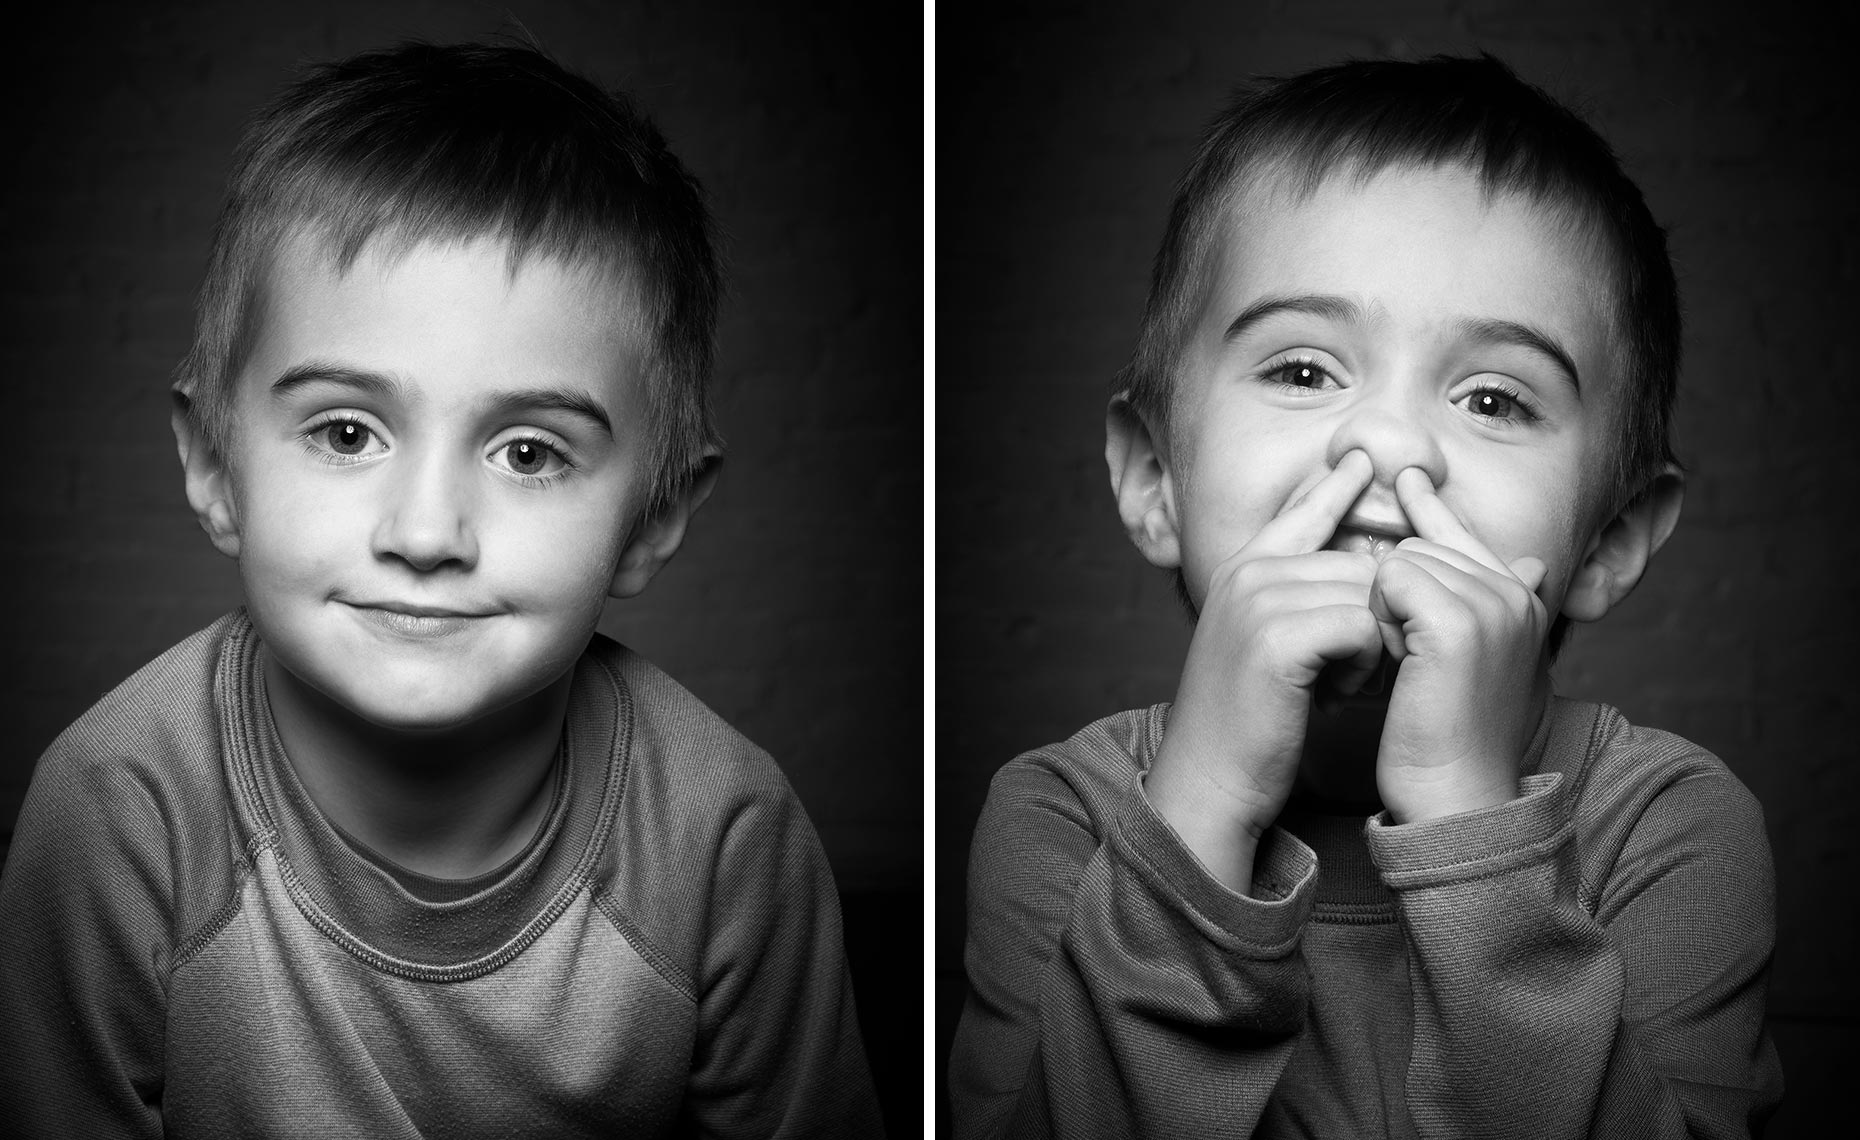 B&W Moody Portrait of a young boy having Fun-Macek_Anton-2up